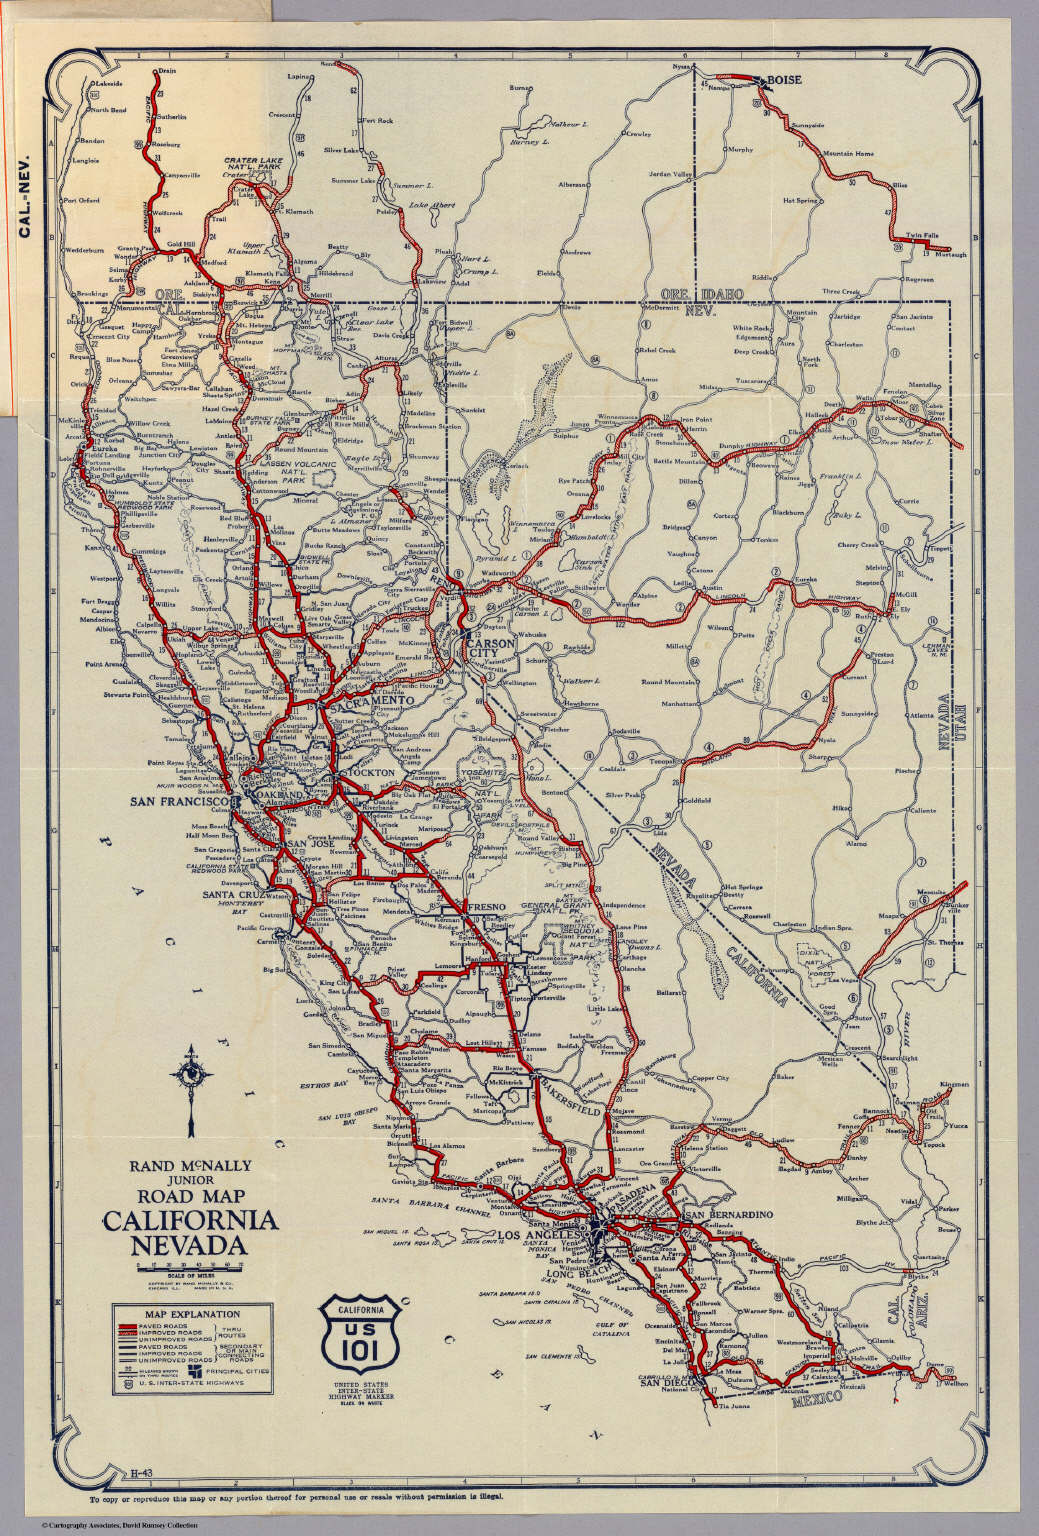 Rand McNally Junior Road Map California and Nevada David Rumsey